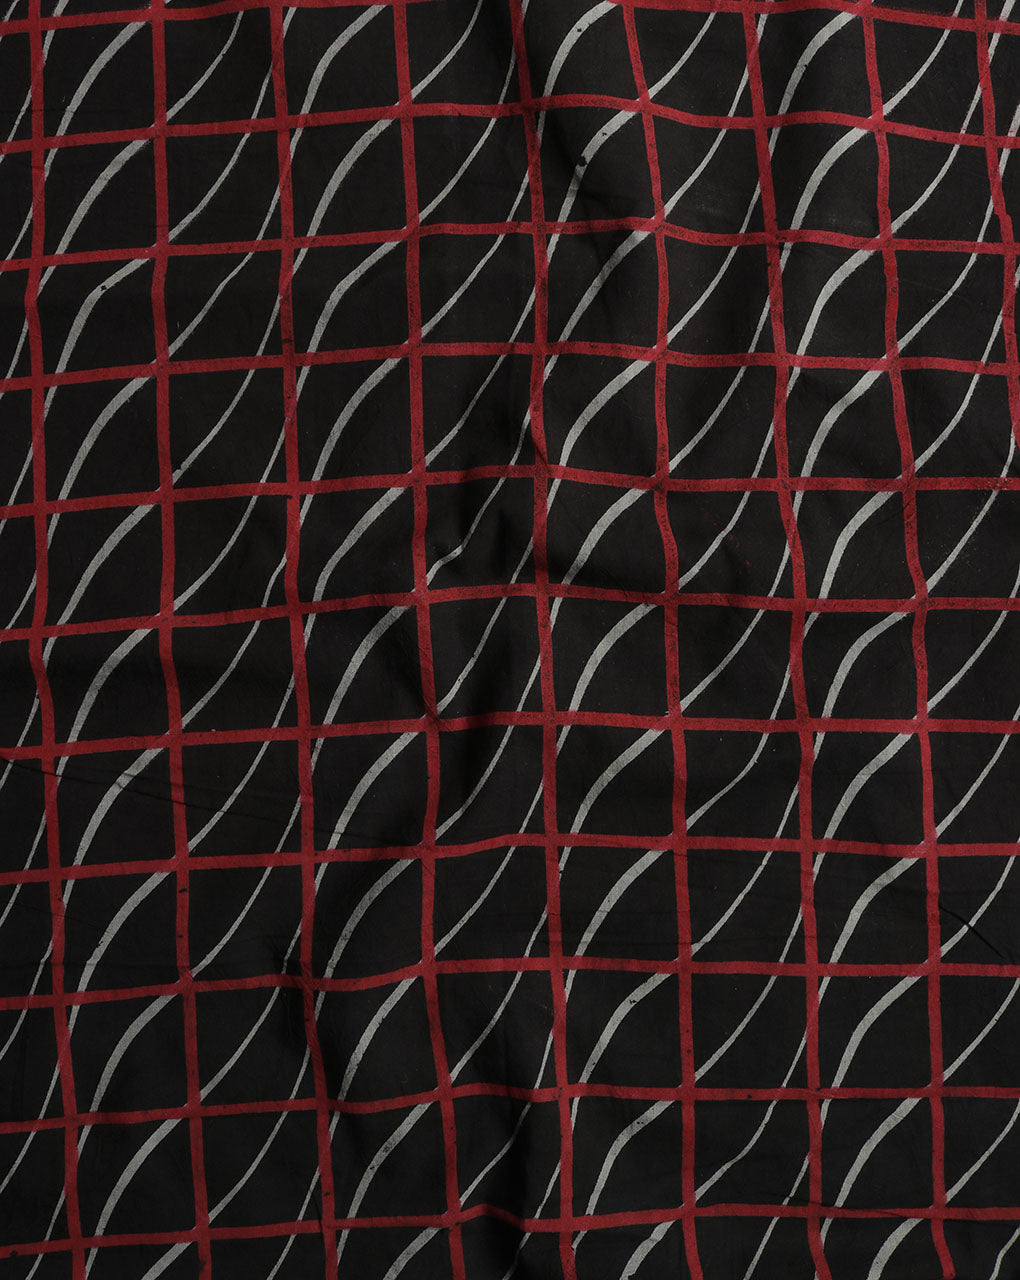 Black & Red Checks Bhuj Screen Print Cotton Fabric - Fabriclore.com